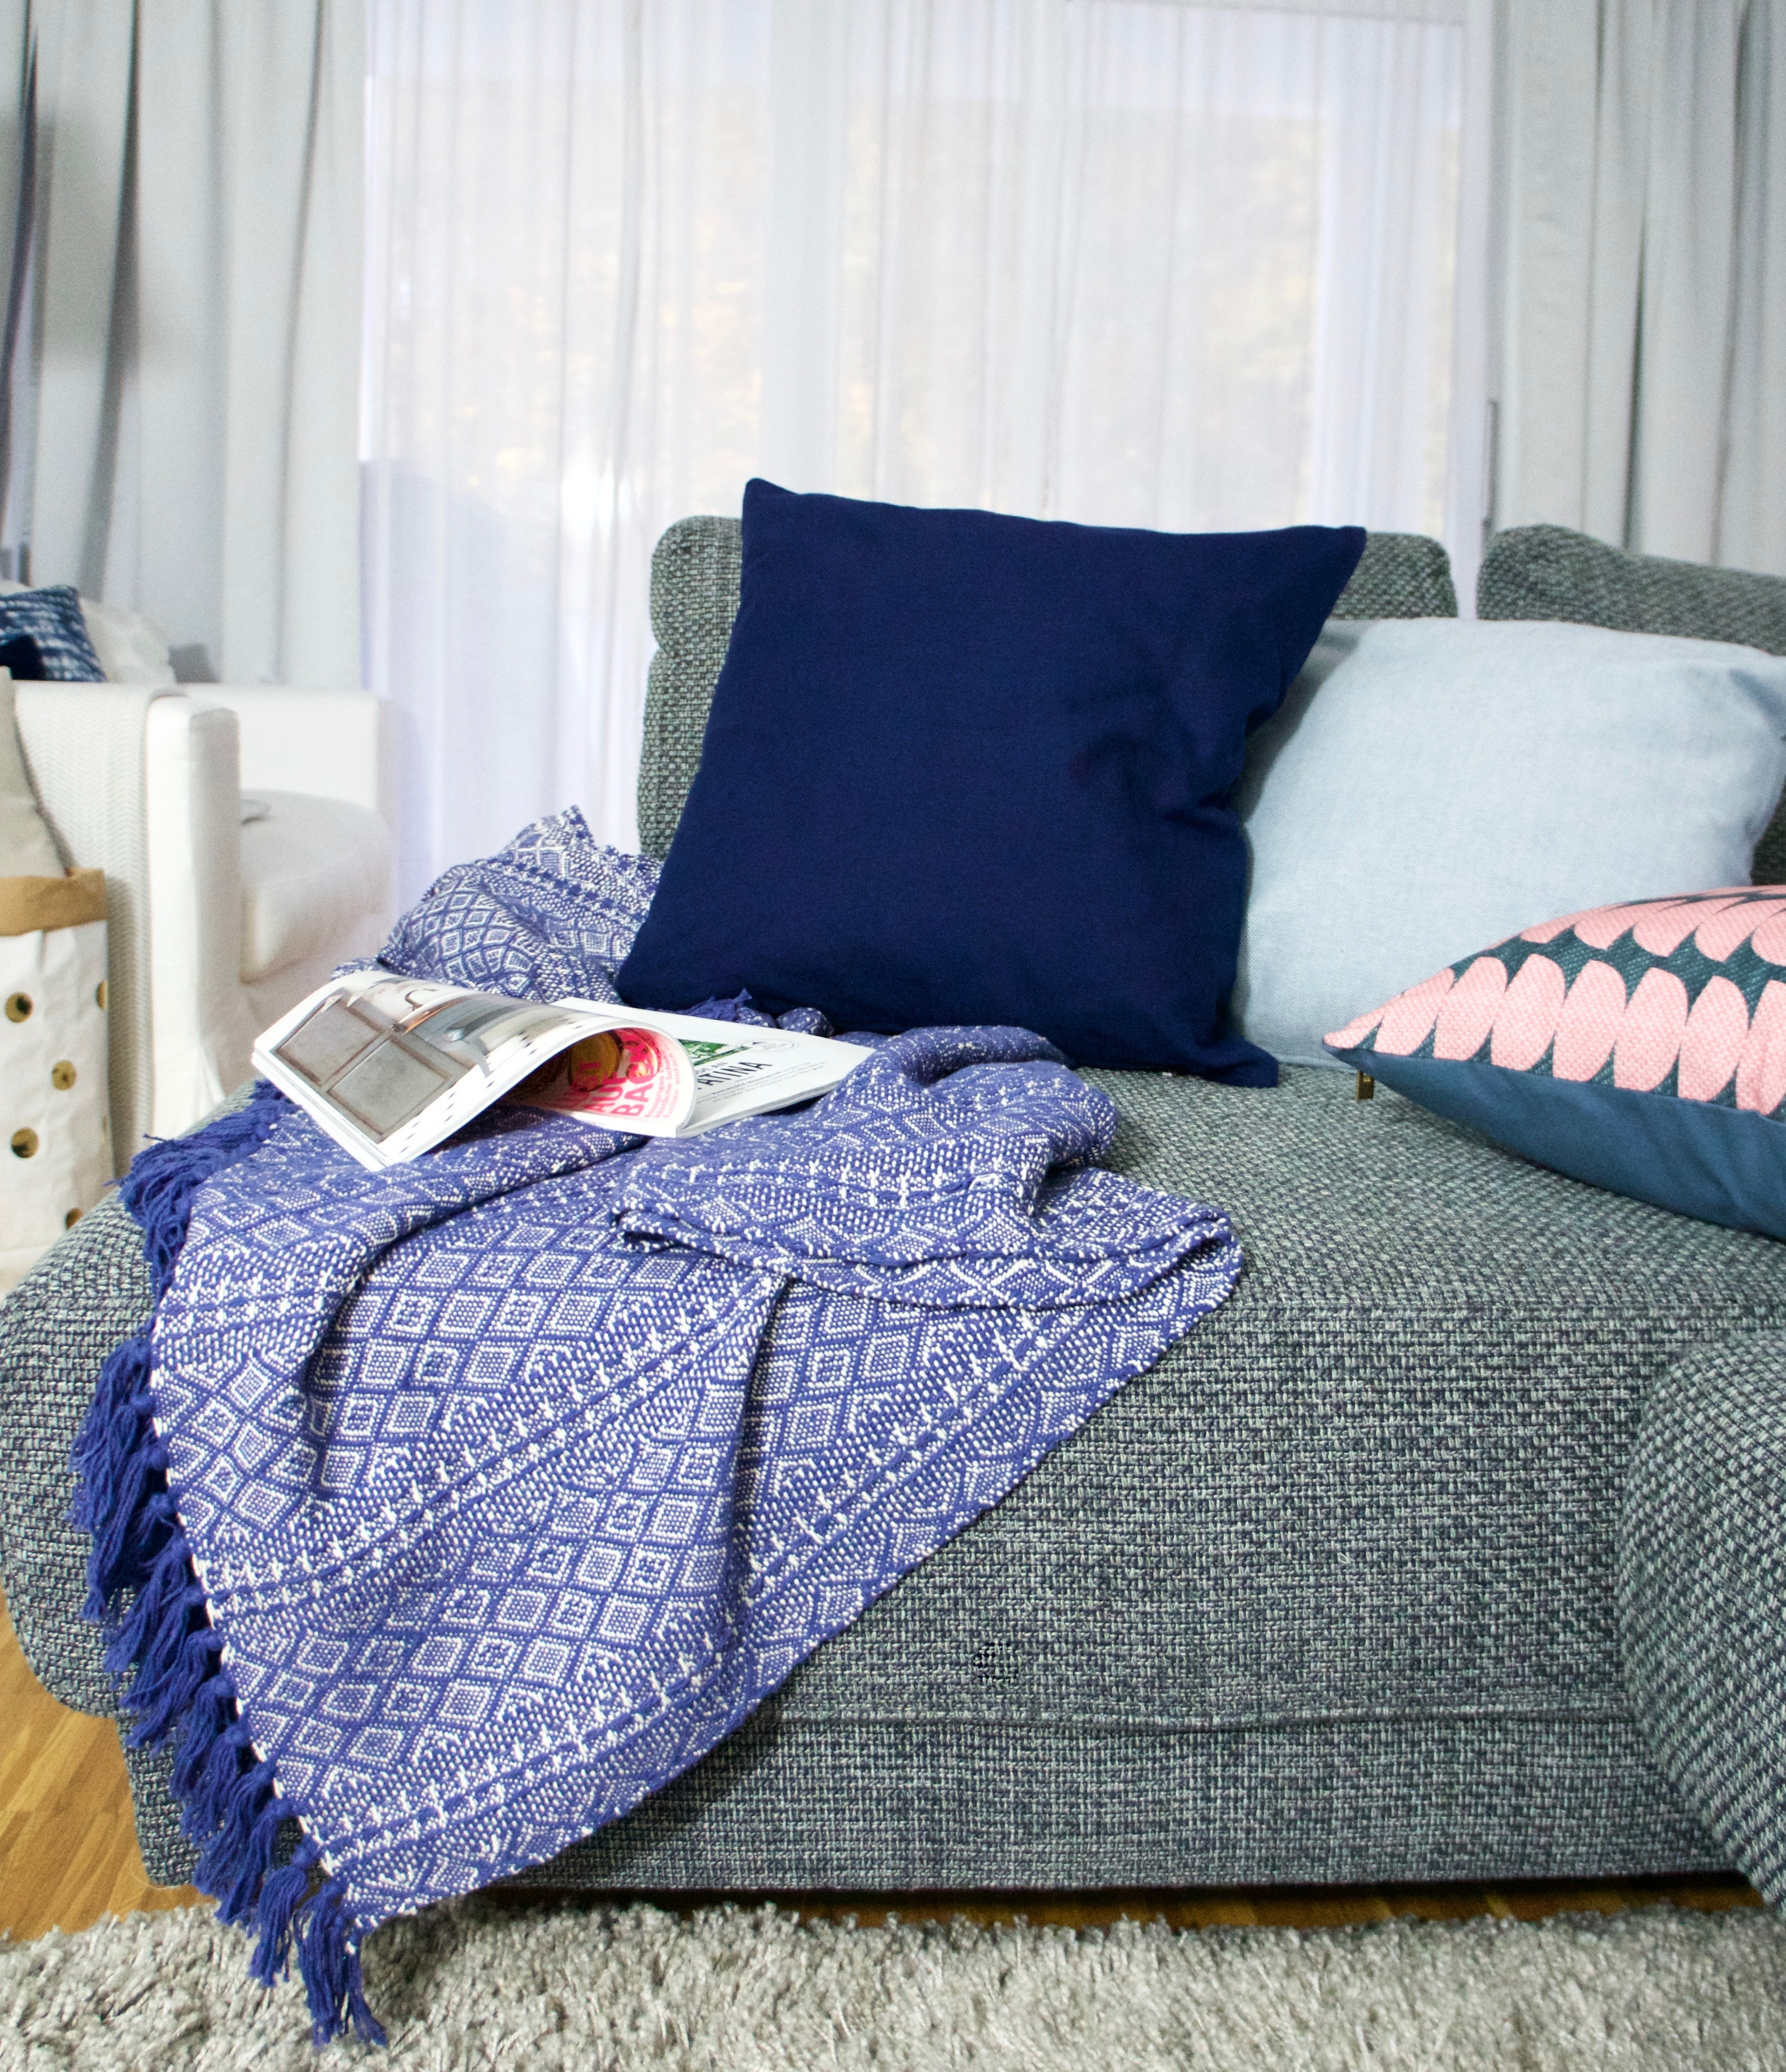 Look_Couch_Blau_Comfy